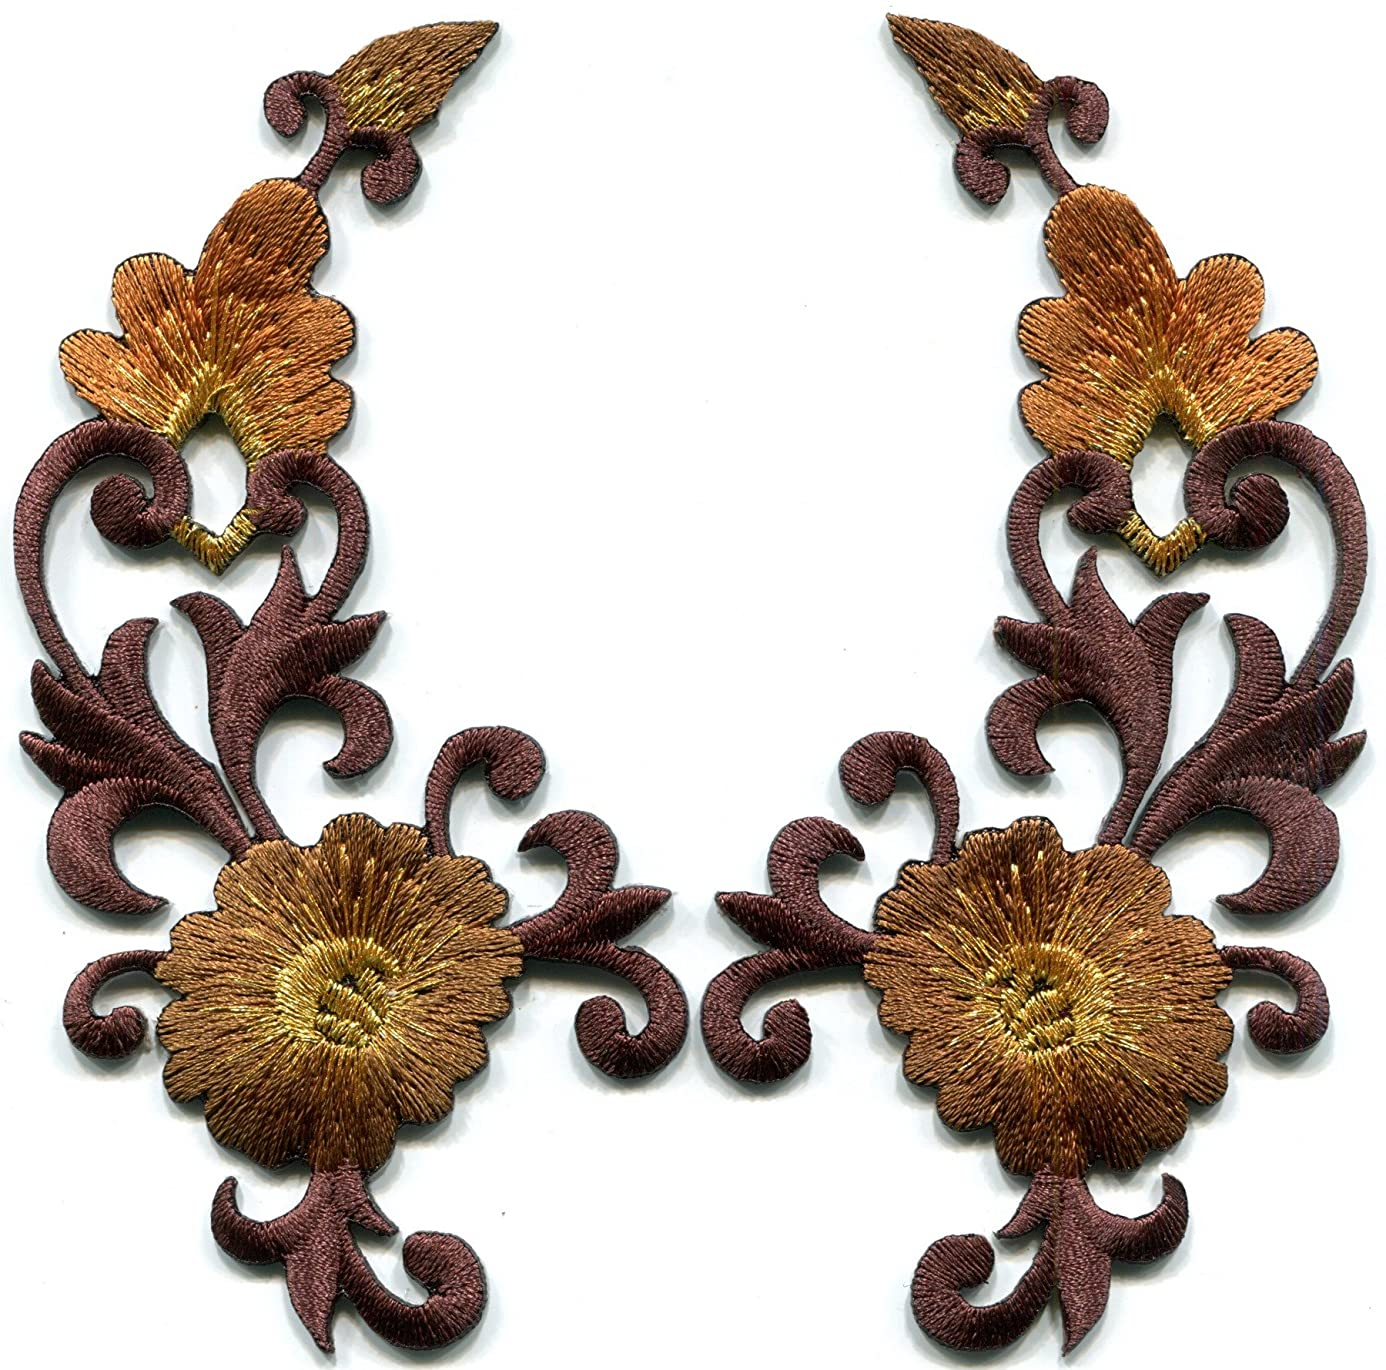 Brown bronze trim fringe flower boho art deco embroidered appliques iron-on patches pair new uof5746495